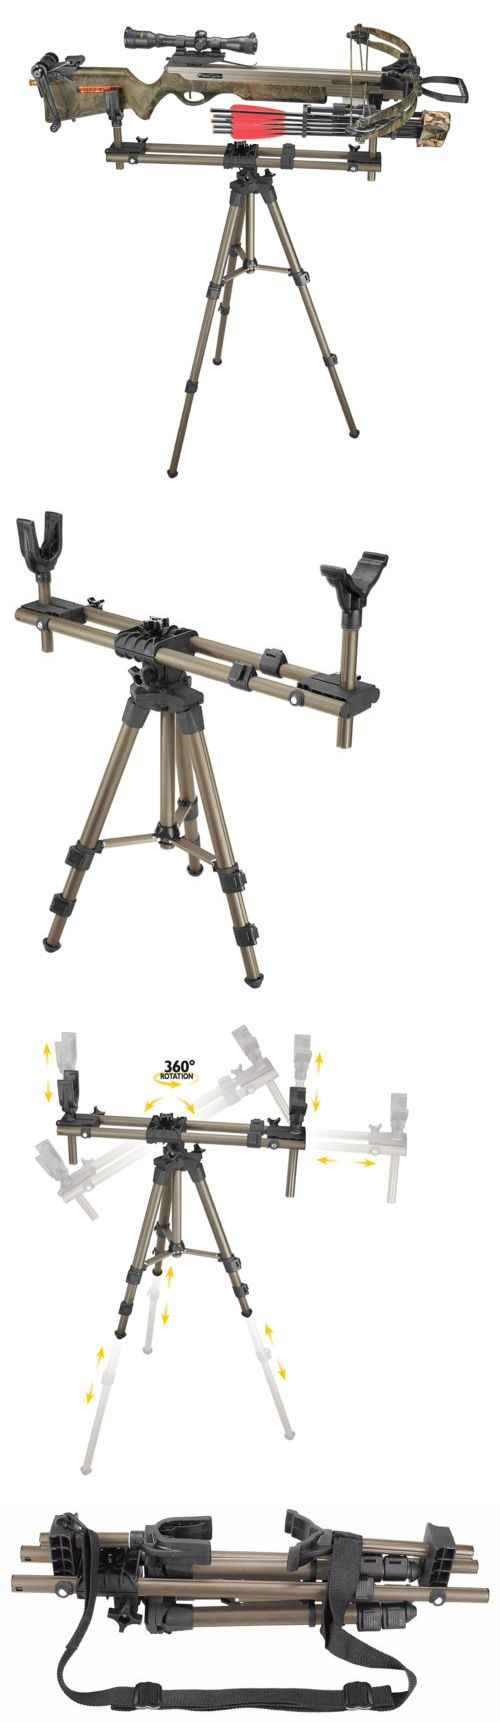 Benches and Rests 177887: Gun Shooting Rest Tripod Hunting Gun Crossbow Rifle Sniper Balance Pod Pivot -> BUY IT NOW ONLY: $97.91 on eBay!